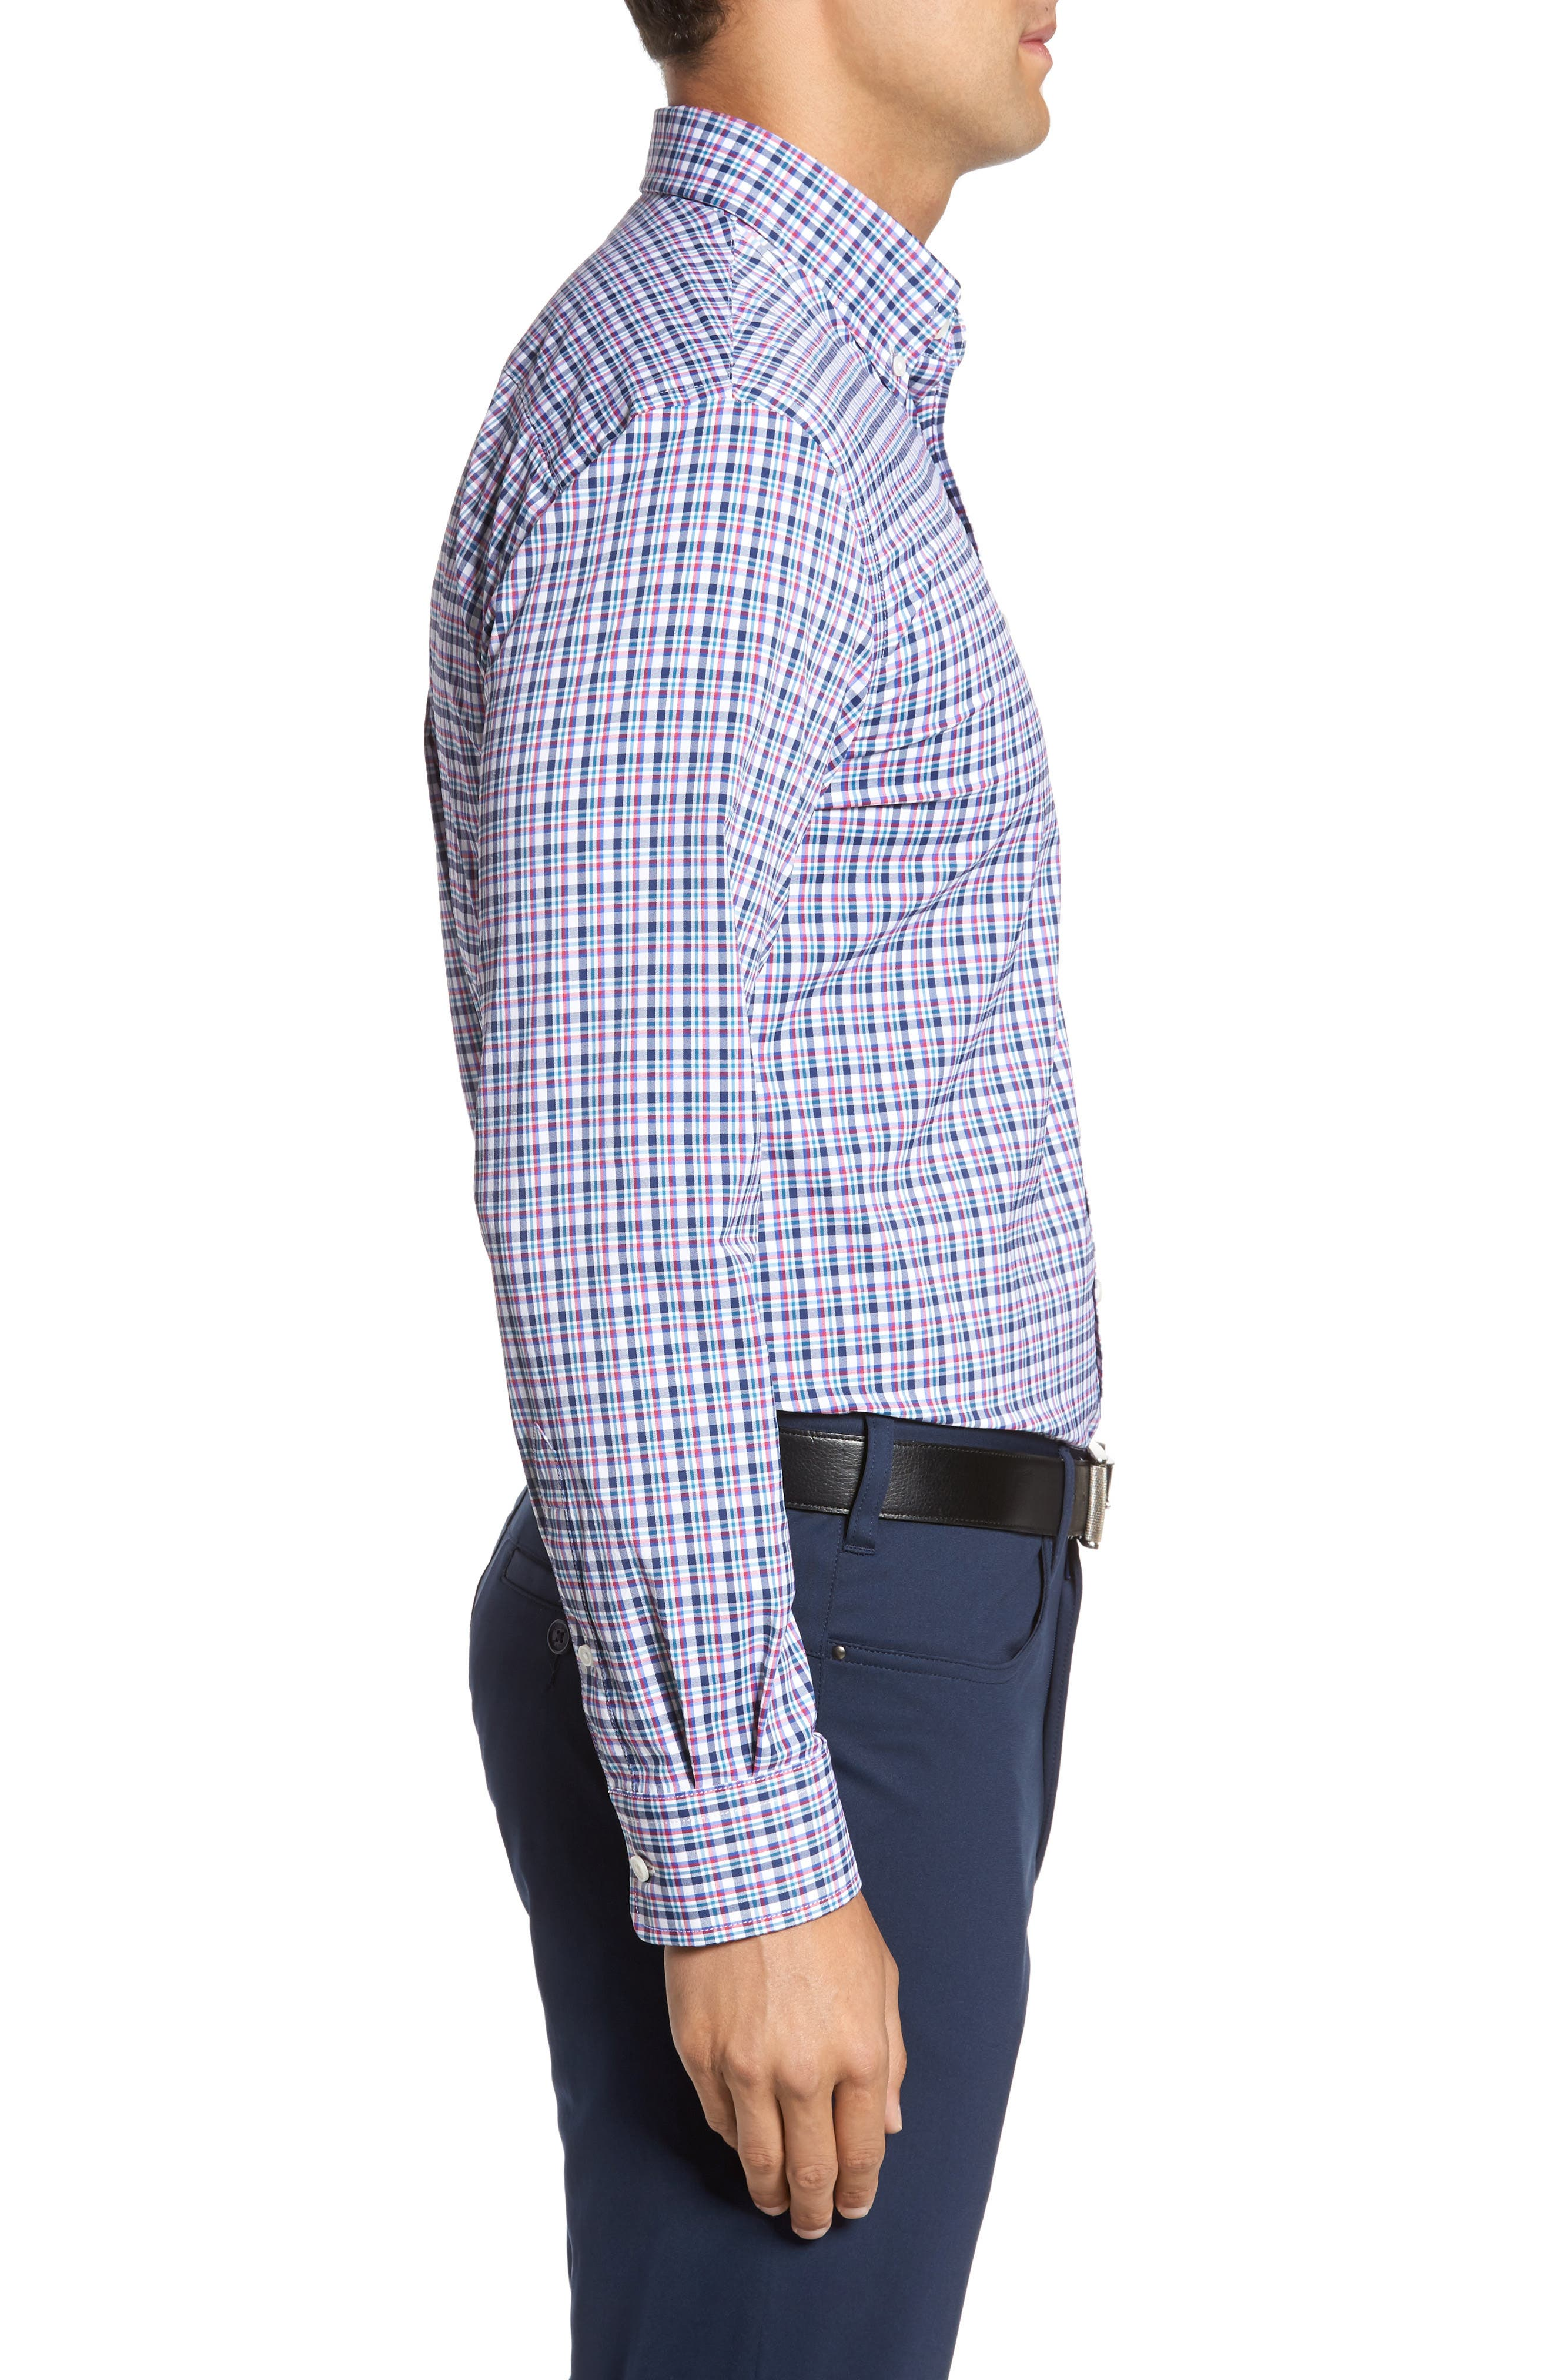 Matthers Easy Care Plaid Sport Shirt,                             Alternate thumbnail 3, color,                             490